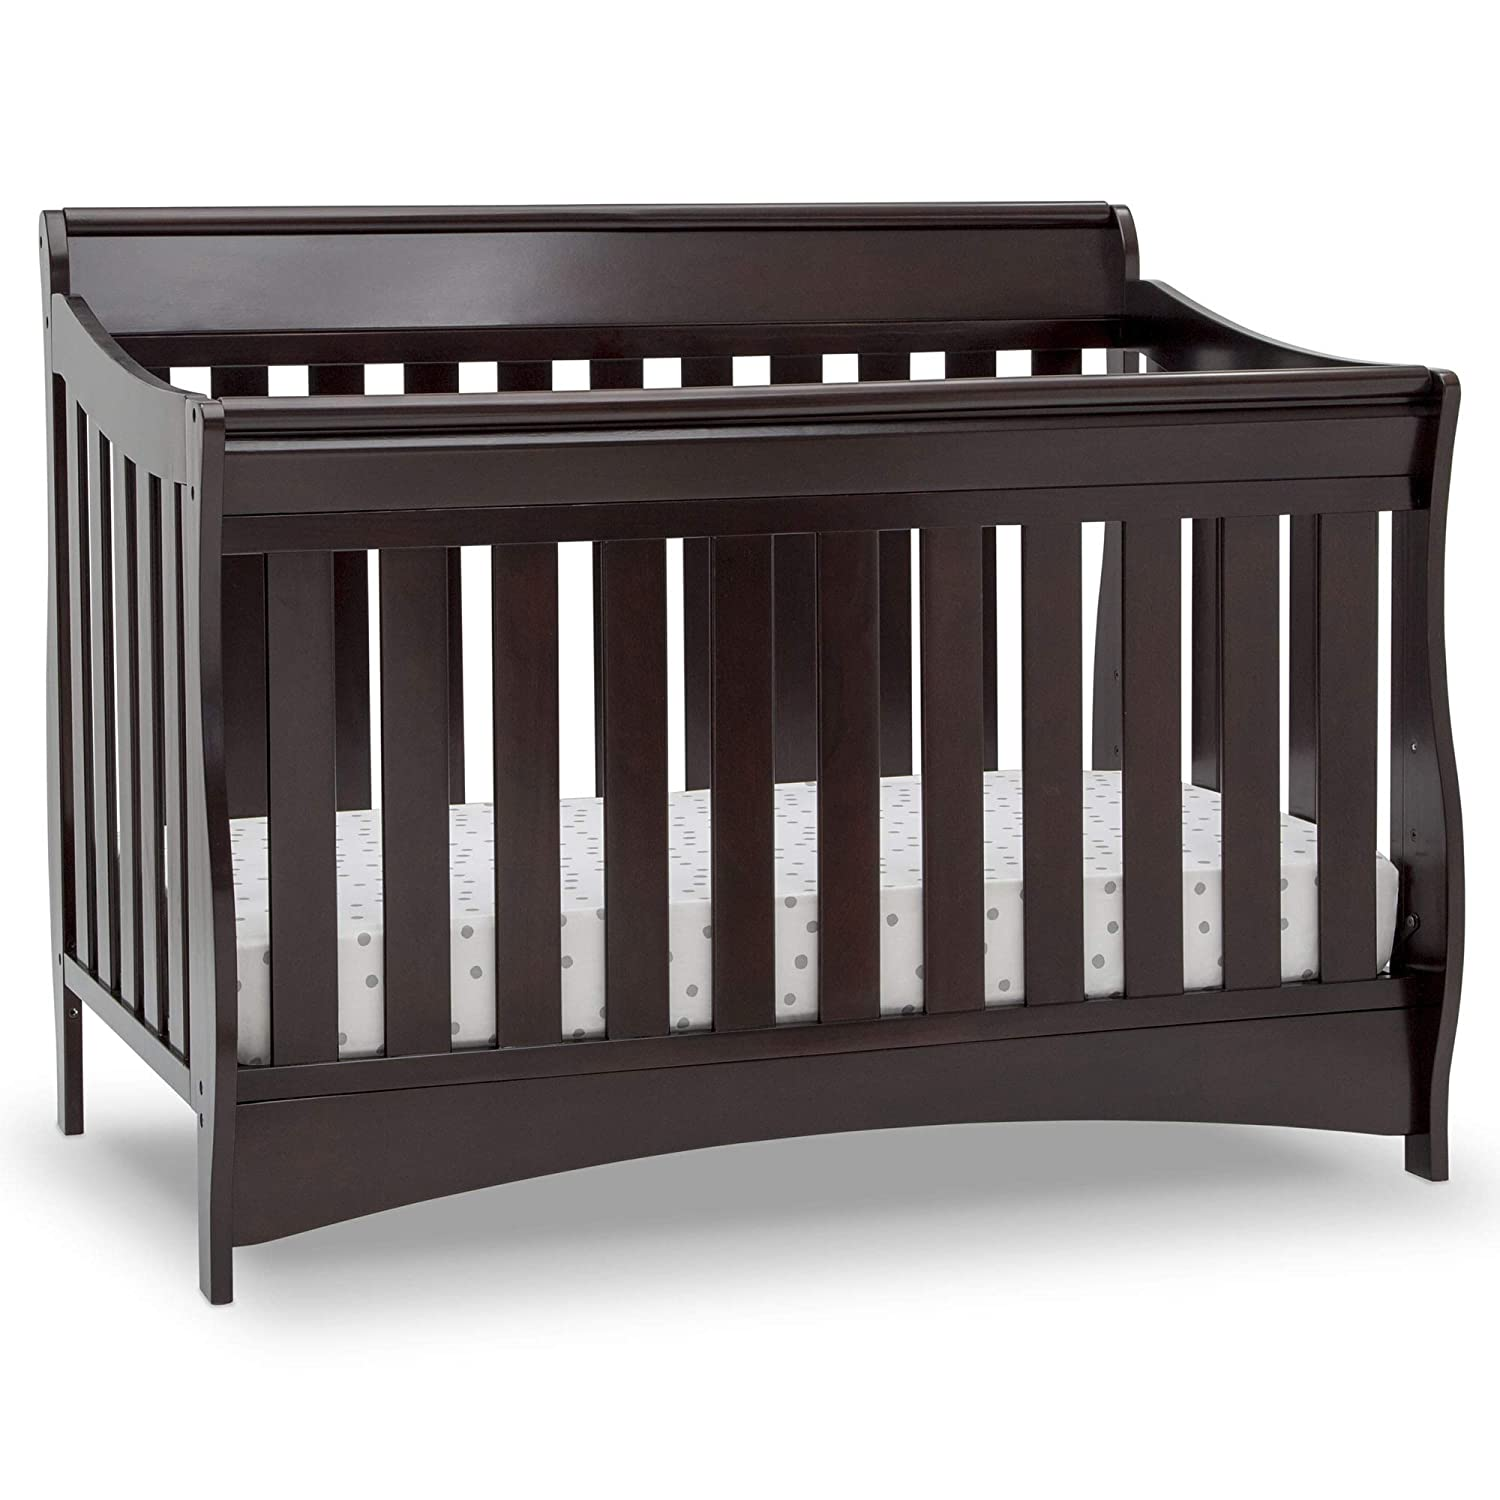 Delta Children Bentley S Series Deluxe 6-in-1 Convertible Crib, Dark Chocolate